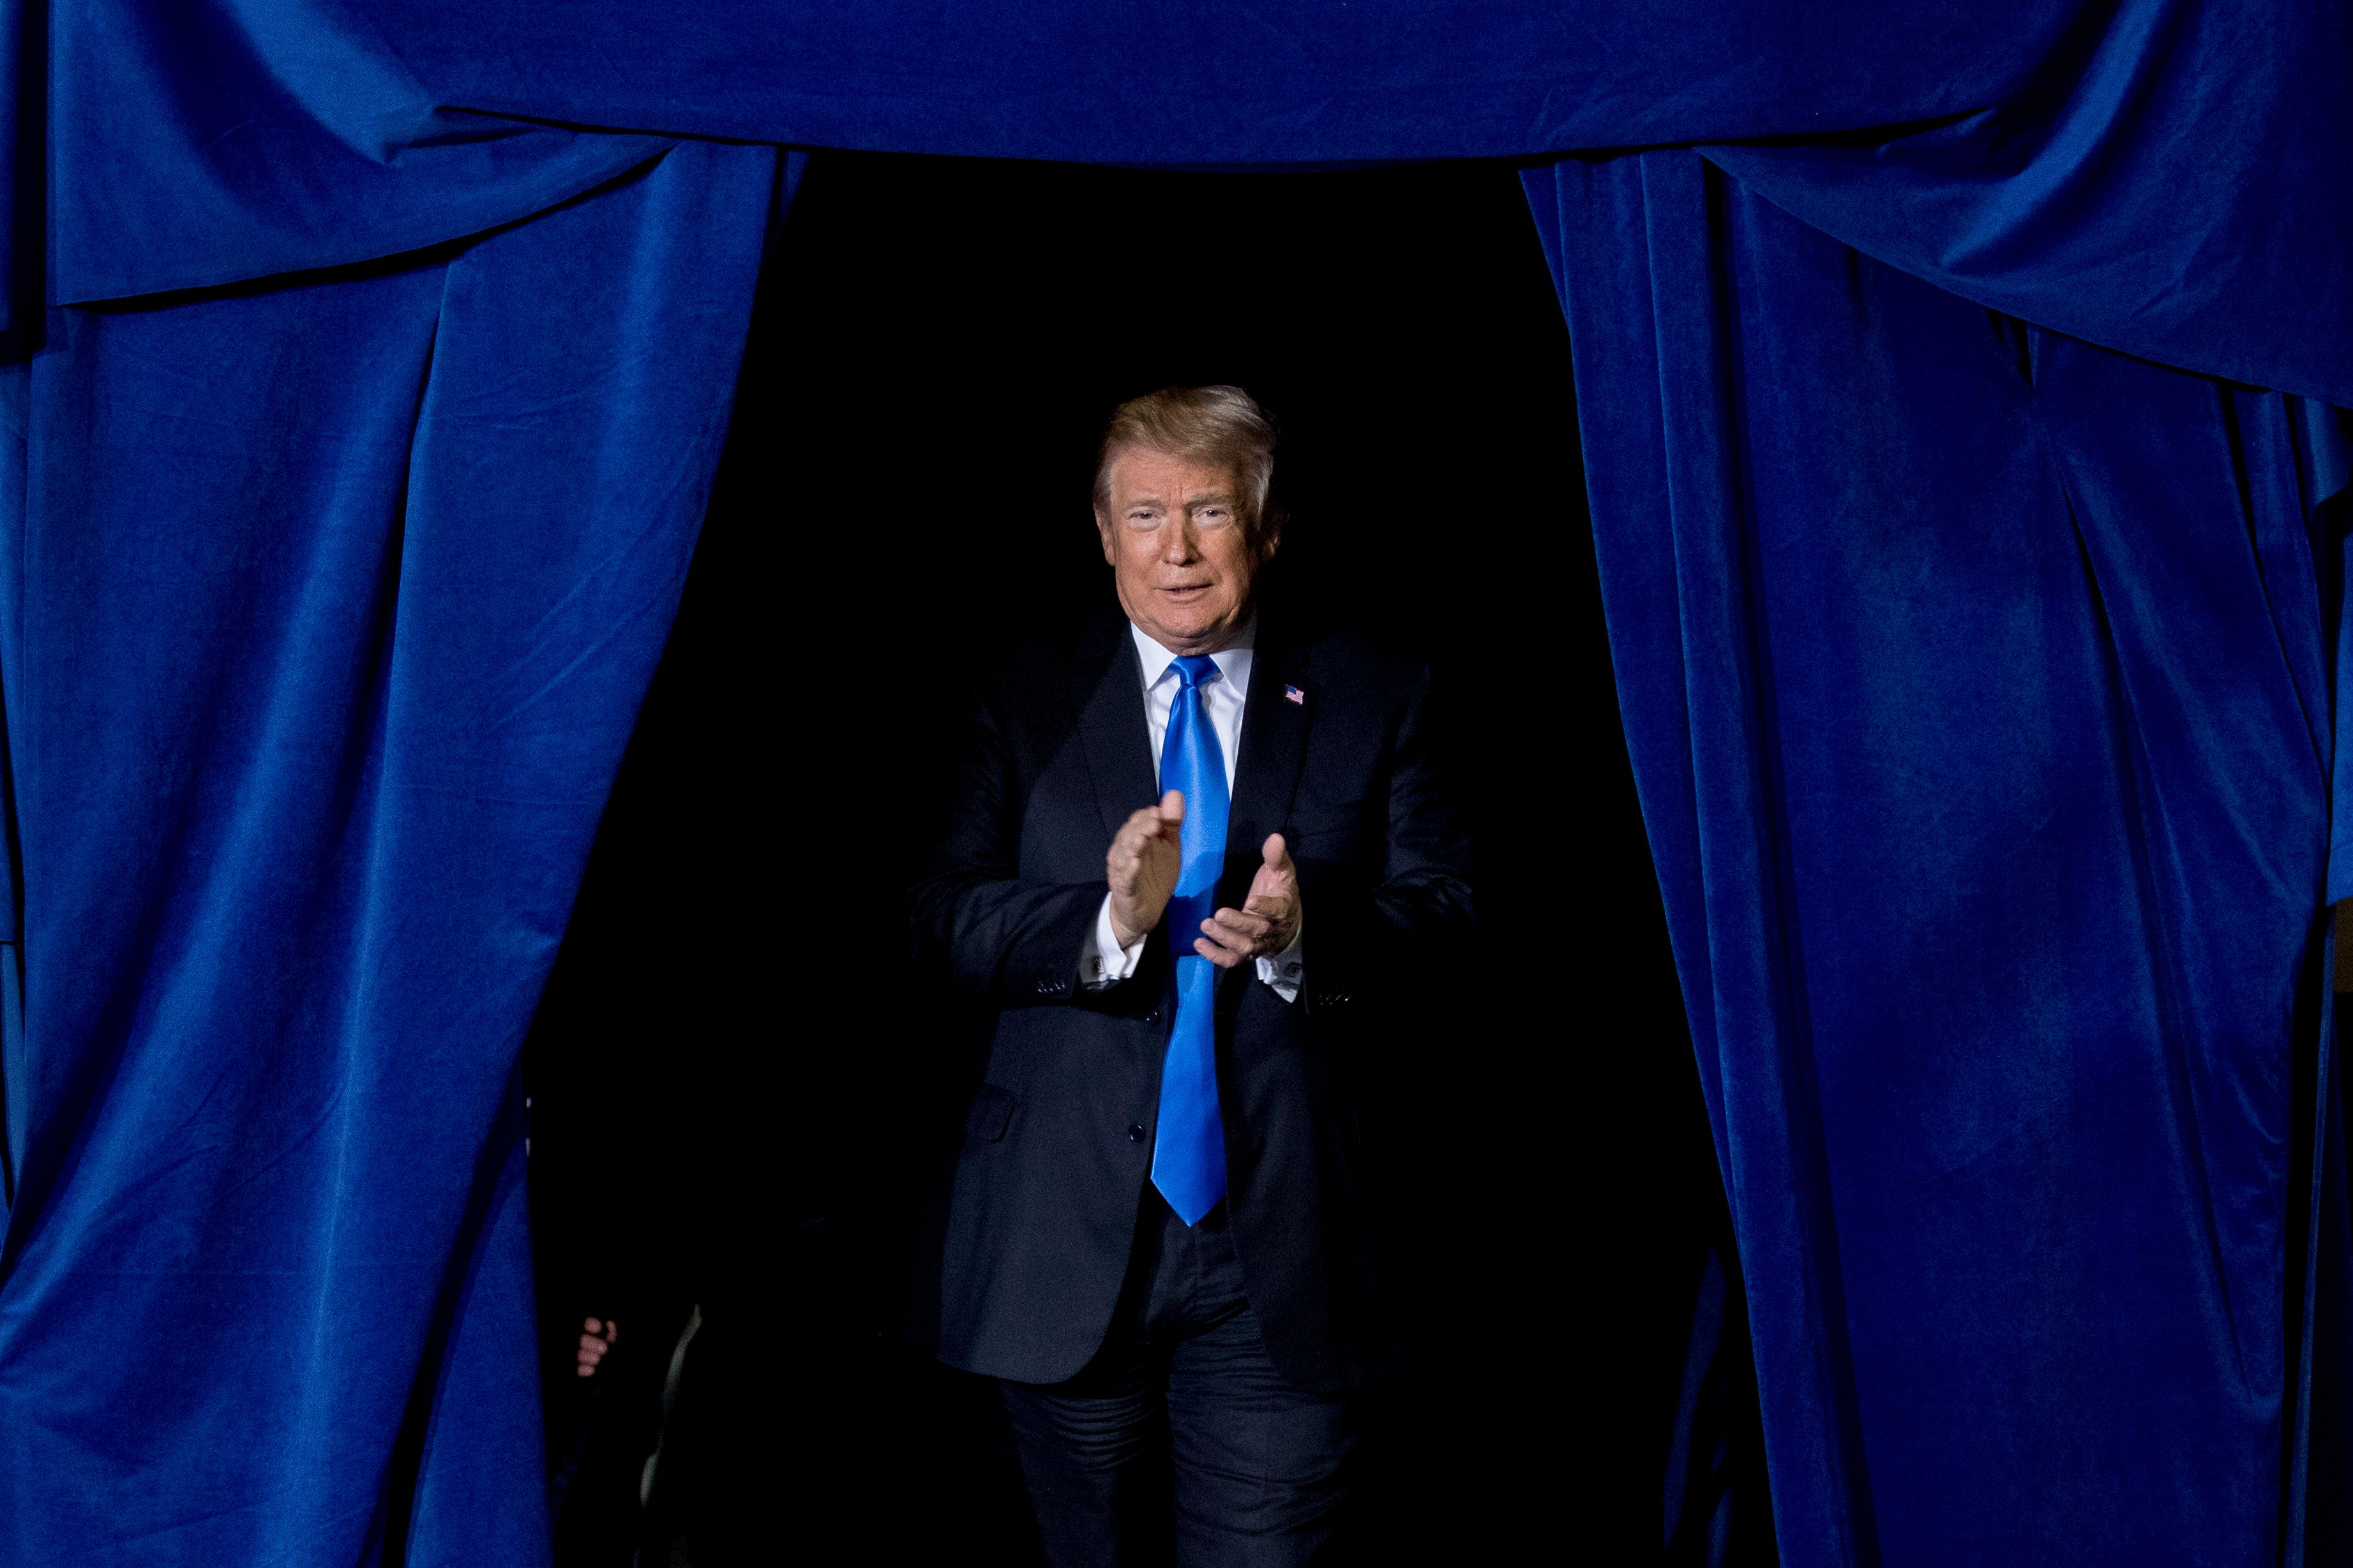 President Donald Trump takes the stage at a rally at Alumni Coliseum in Richmond, Ky., Saturday, Oct. 13, 2018. (AP Photo/Andrew Harnik)